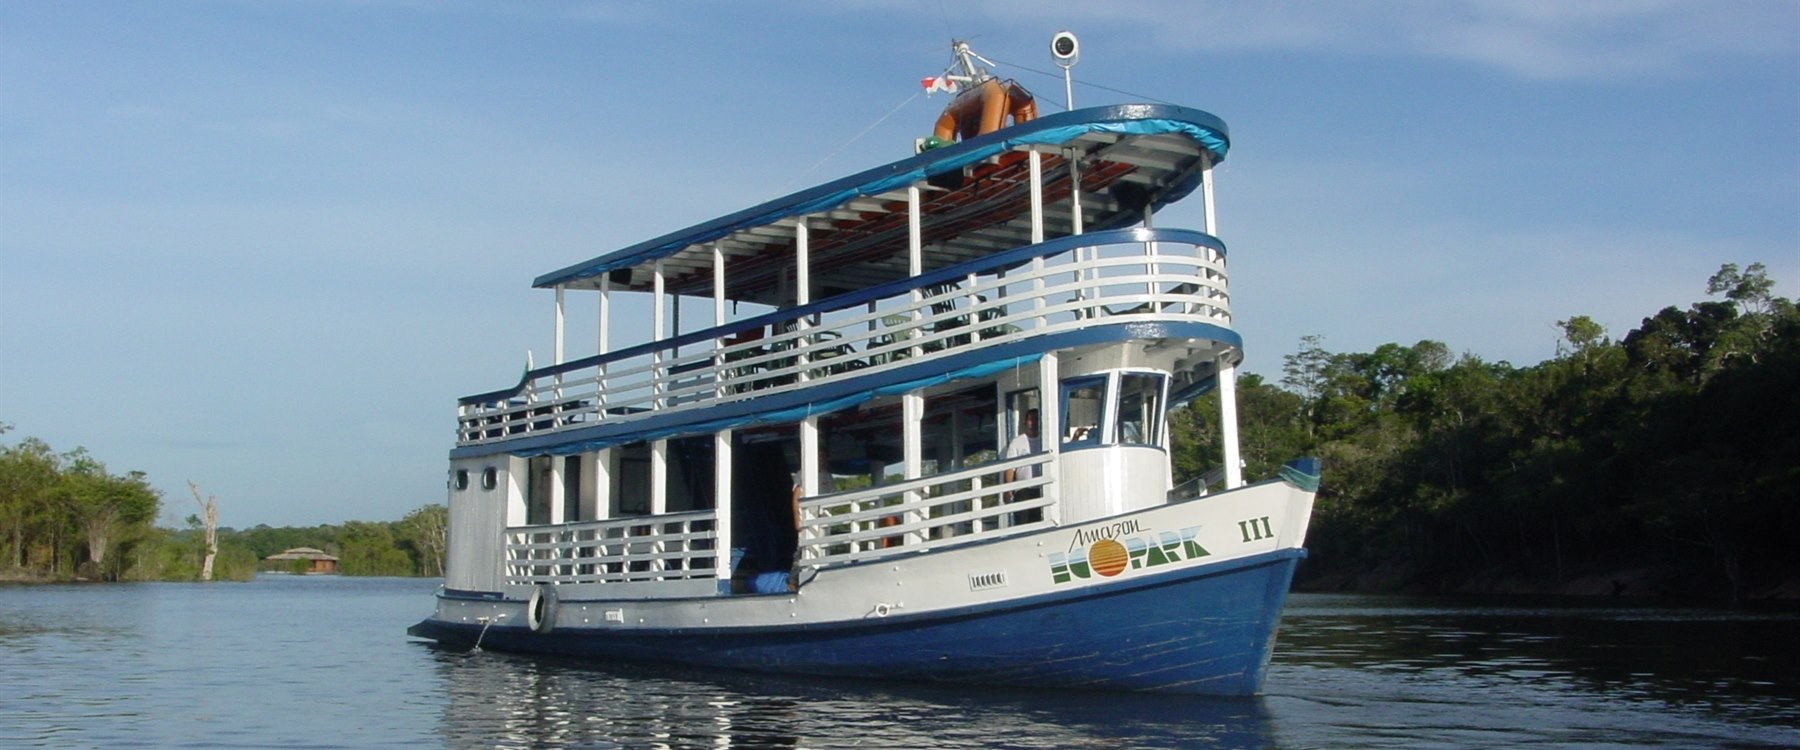 Boat excursion at Amazon Eco Park Jungle Lodge, Brazil